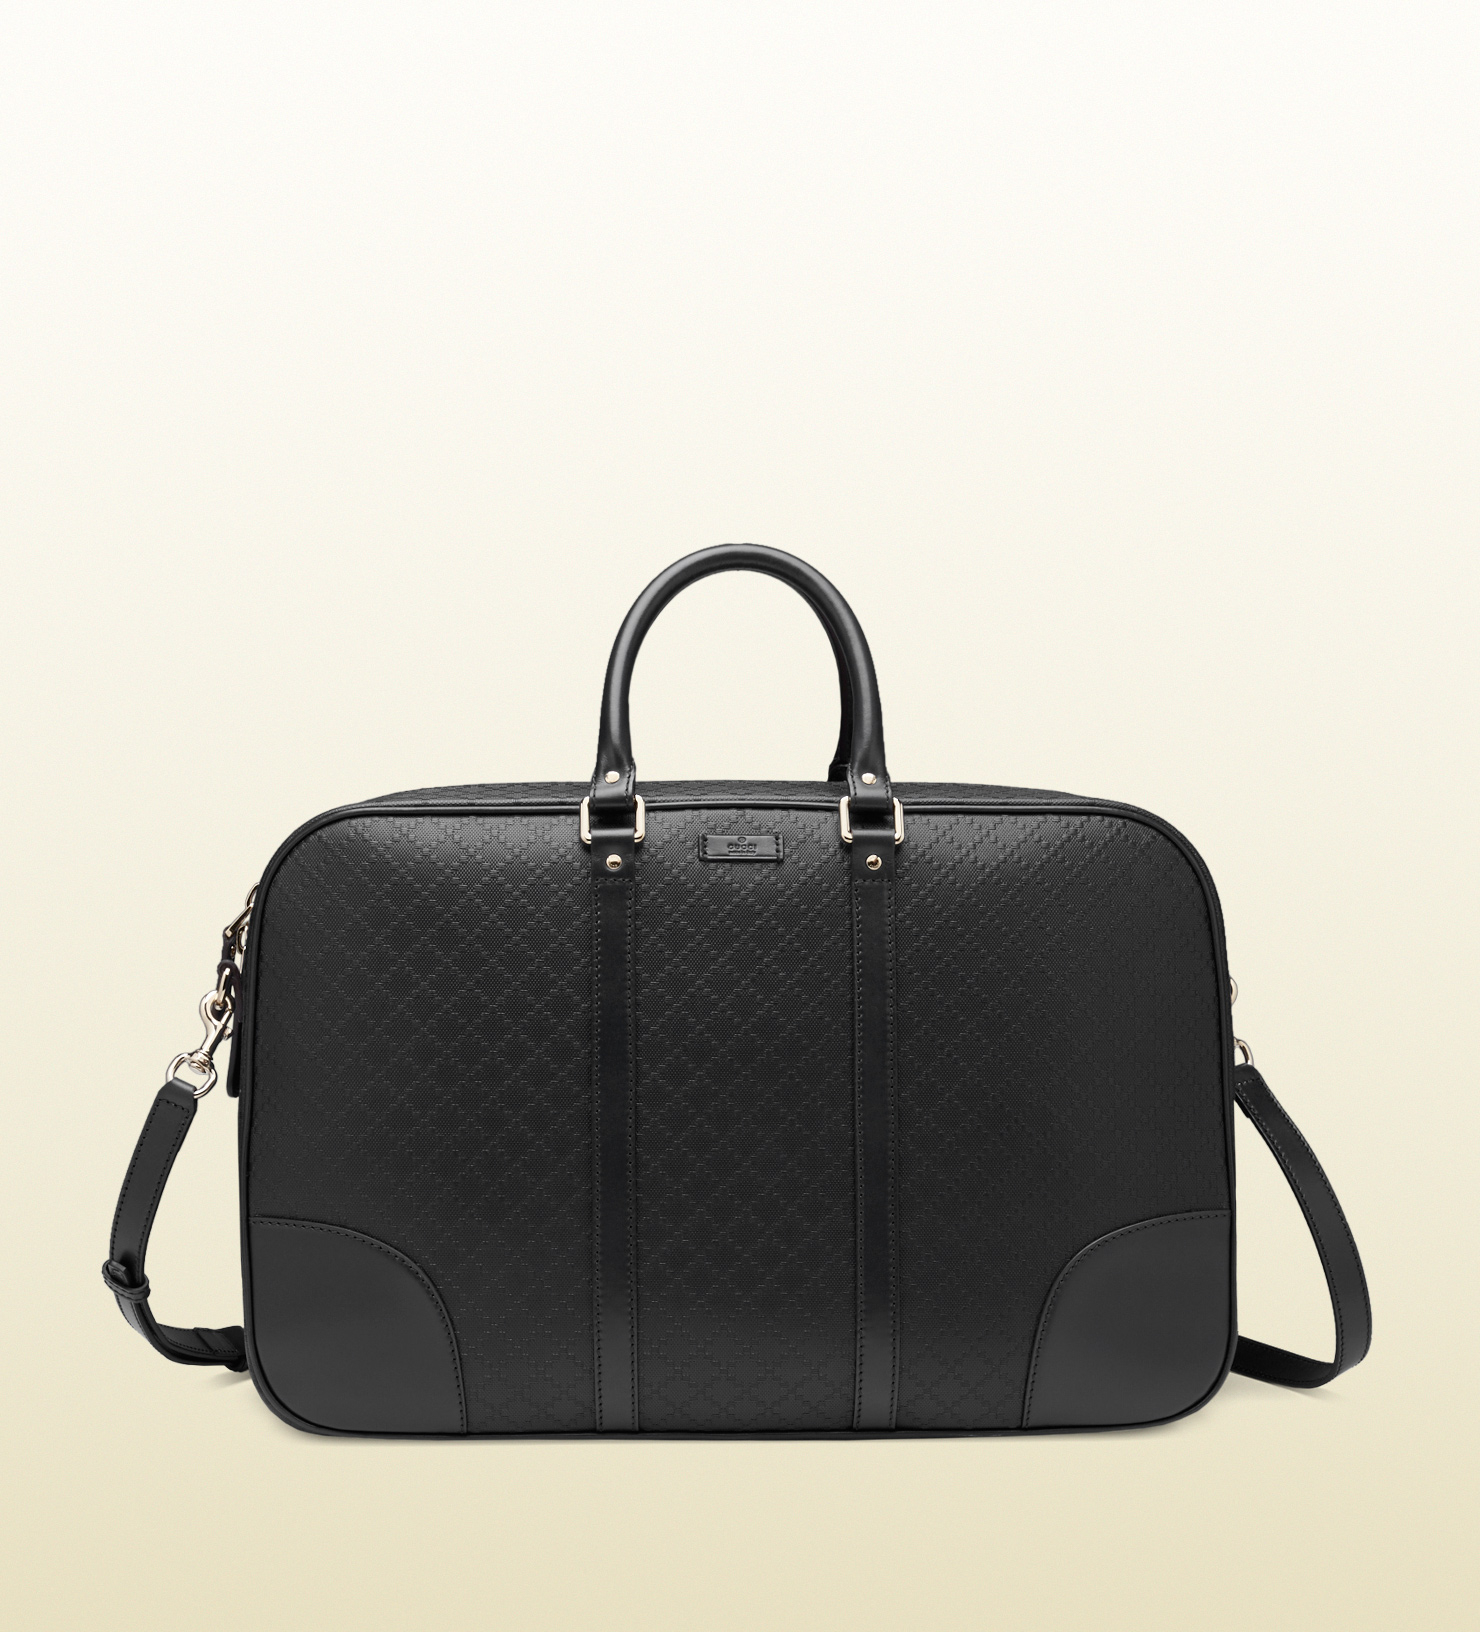 86ced9f863d5 Gucci Bright Diamante Leather Duffle Bag in Black - Lyst